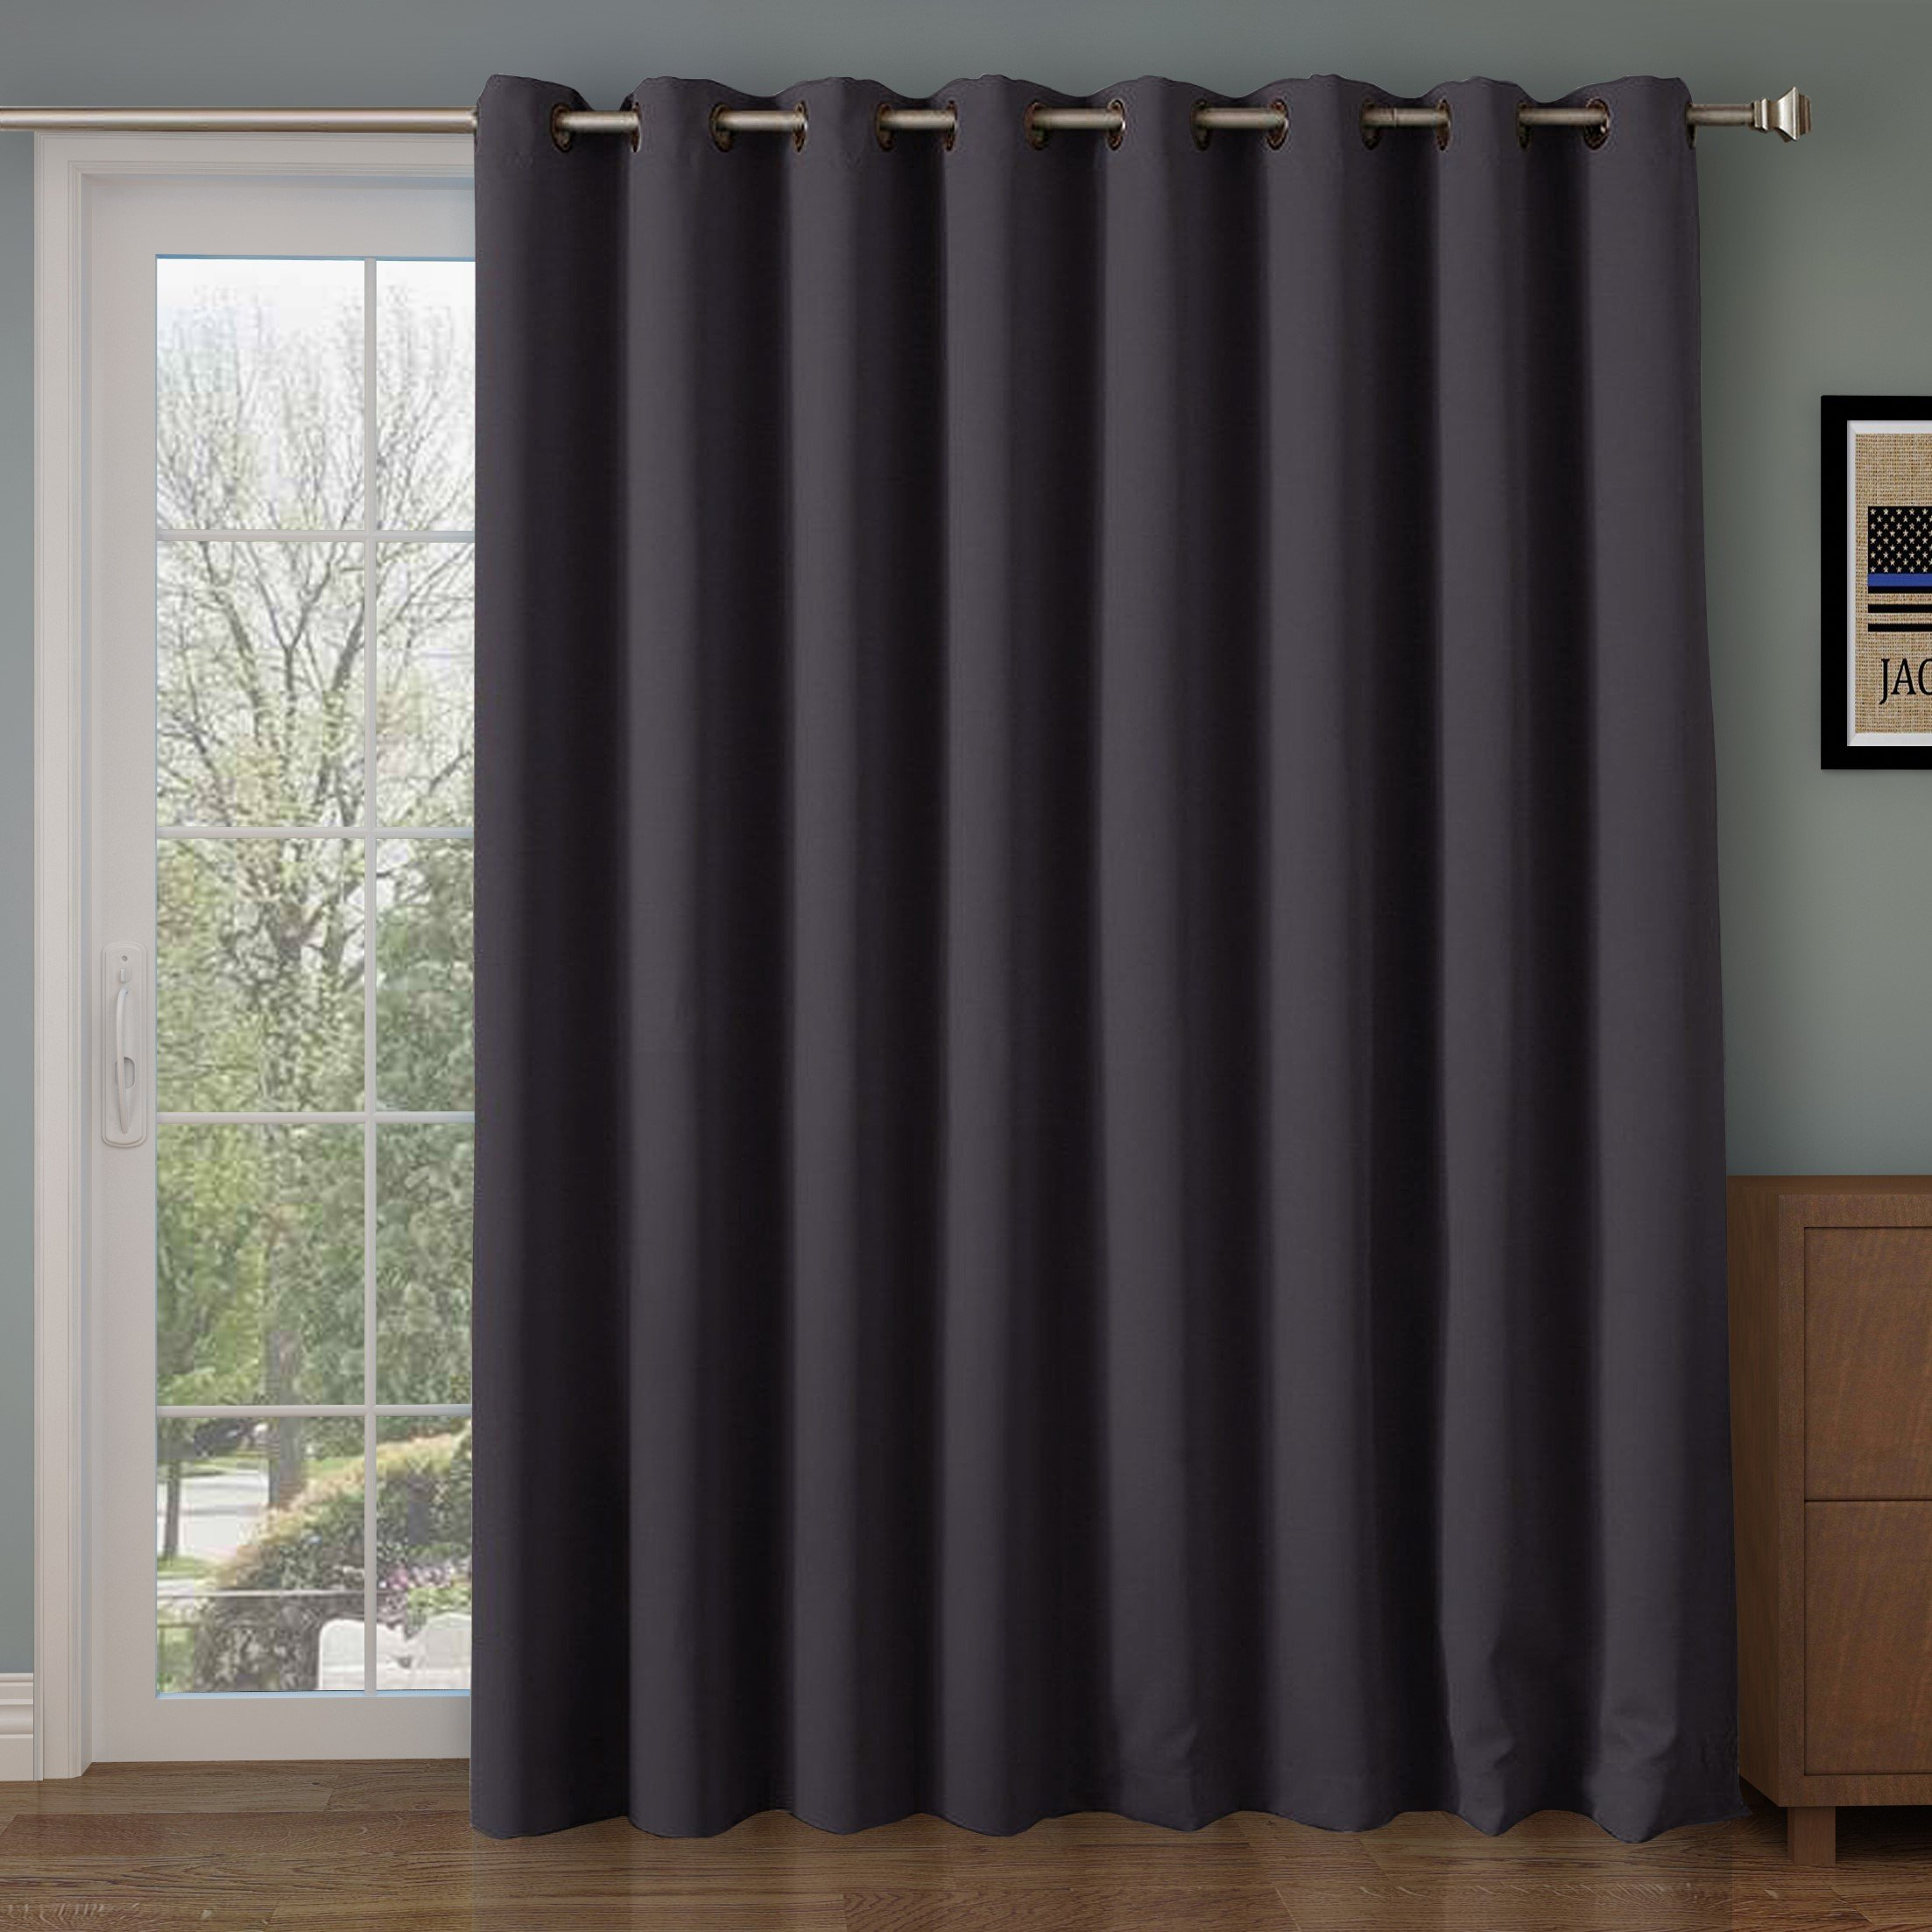 Rose Home Fashion RHF Wide Thermal Blackout Patio Door Curtain Panel, Sliding Door Insulated Curtains,Extra Wide Curtains:100W by 84L Inches-Grey 100W by 84L Inches-Dark Grey by Rose Home Fashion